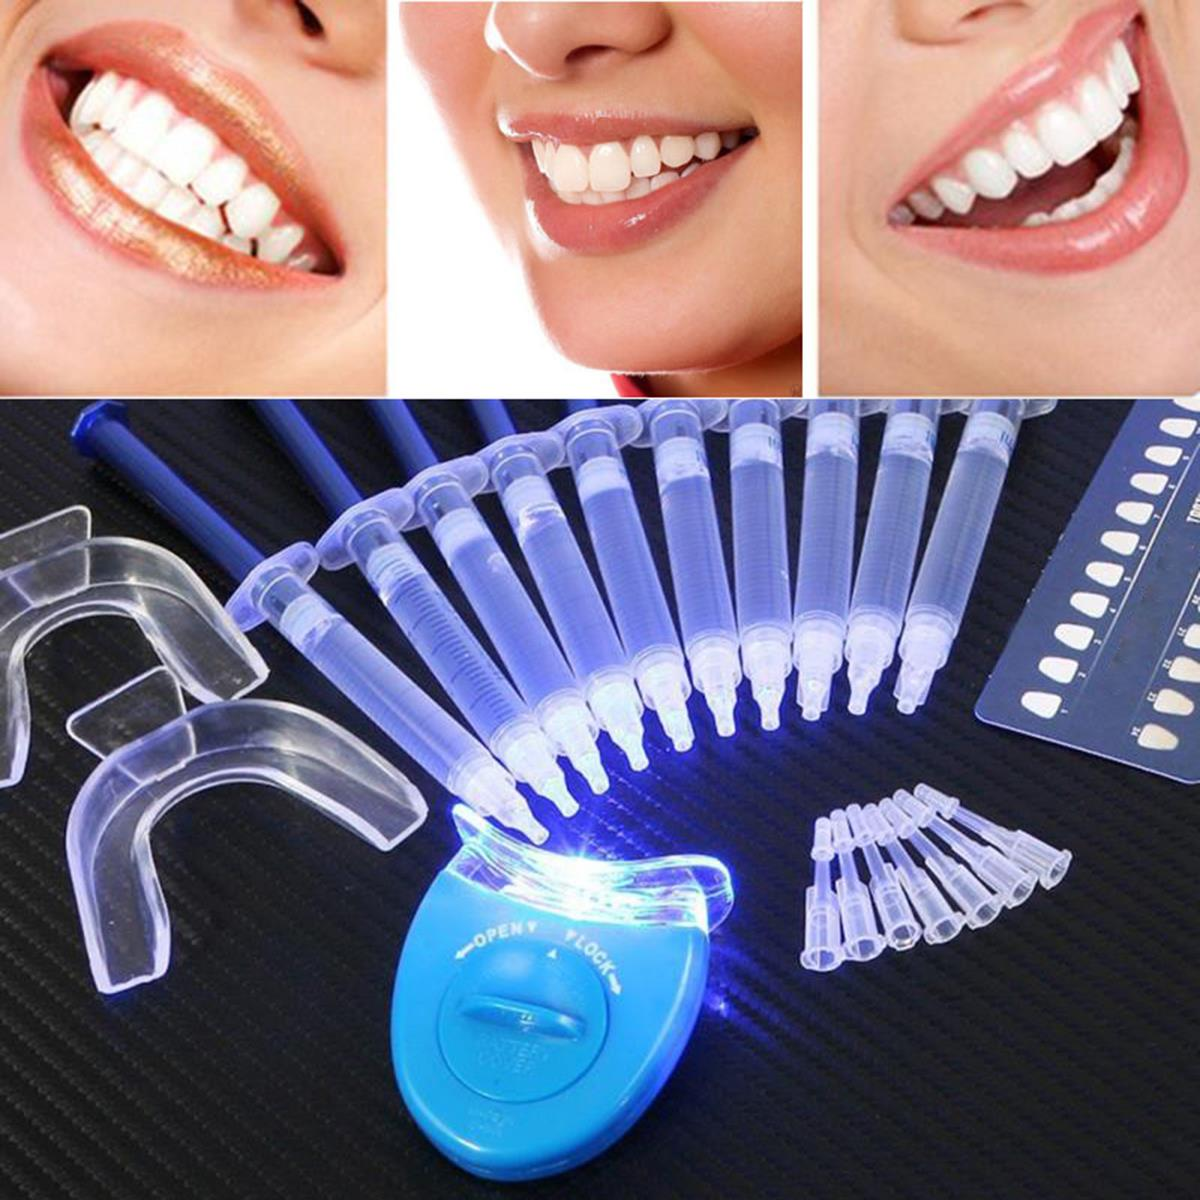 How to choose a tool for whitening nails 59